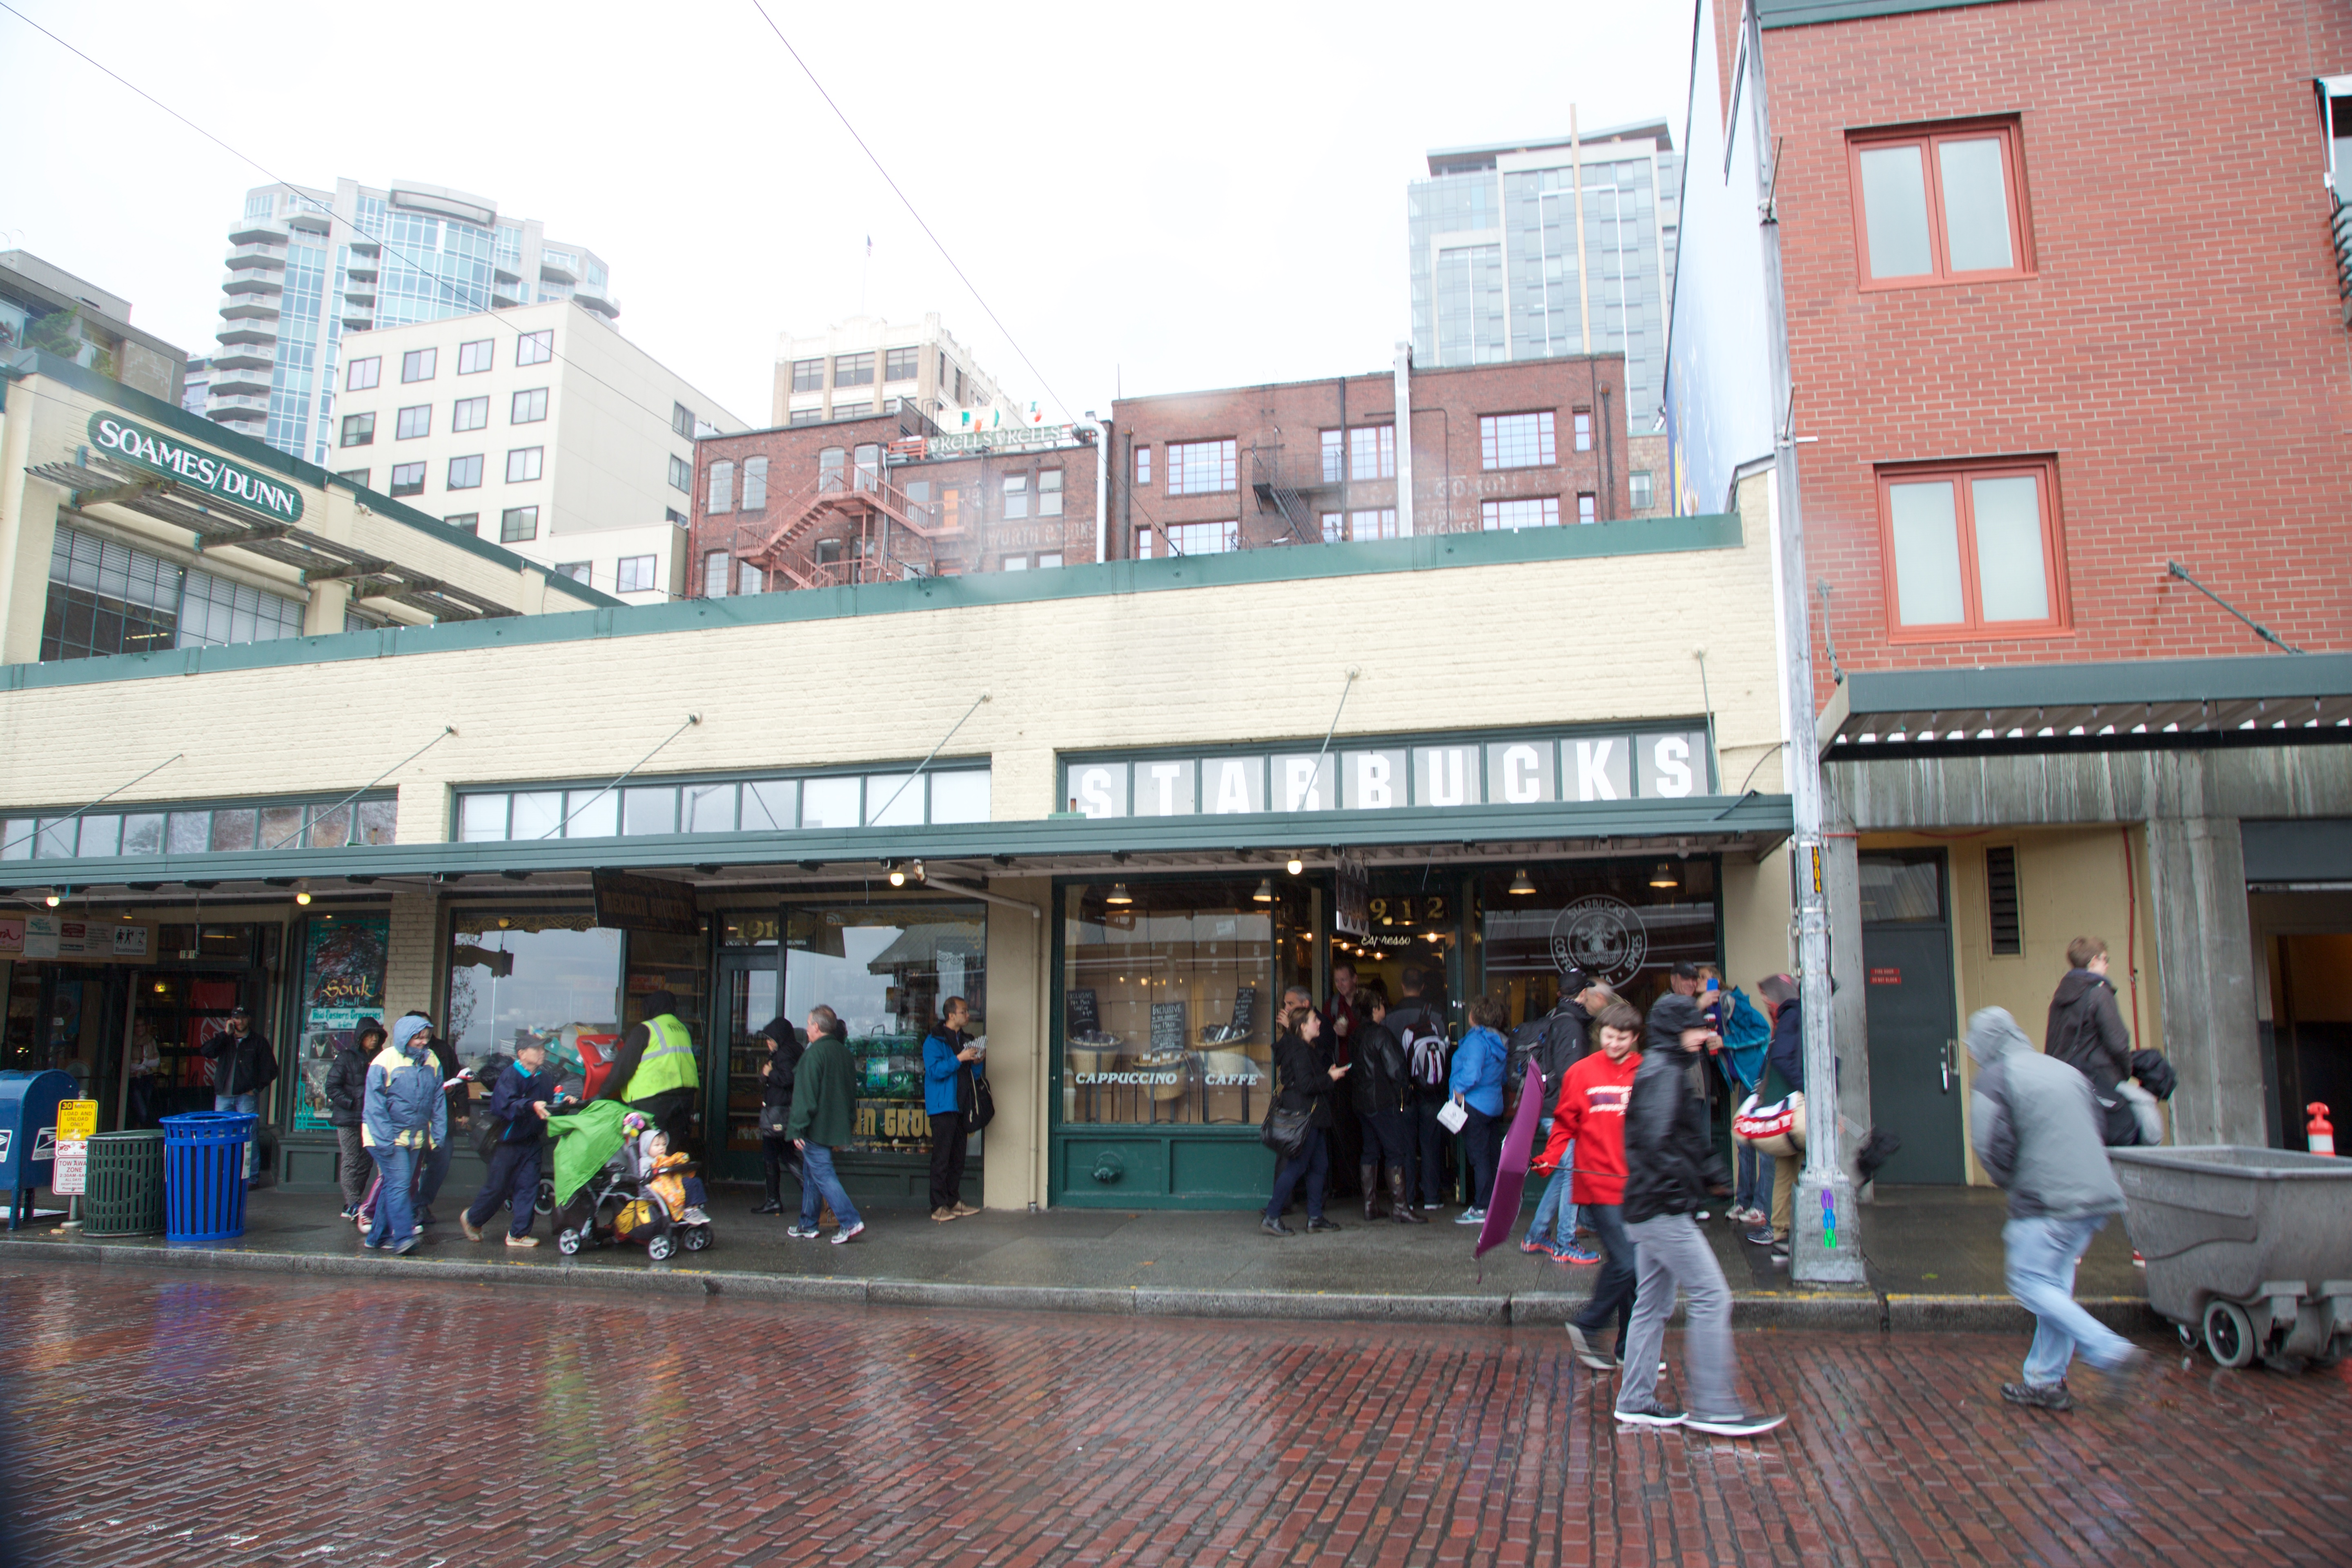 Pics of Seattle 4 - The very first Startbucks shop